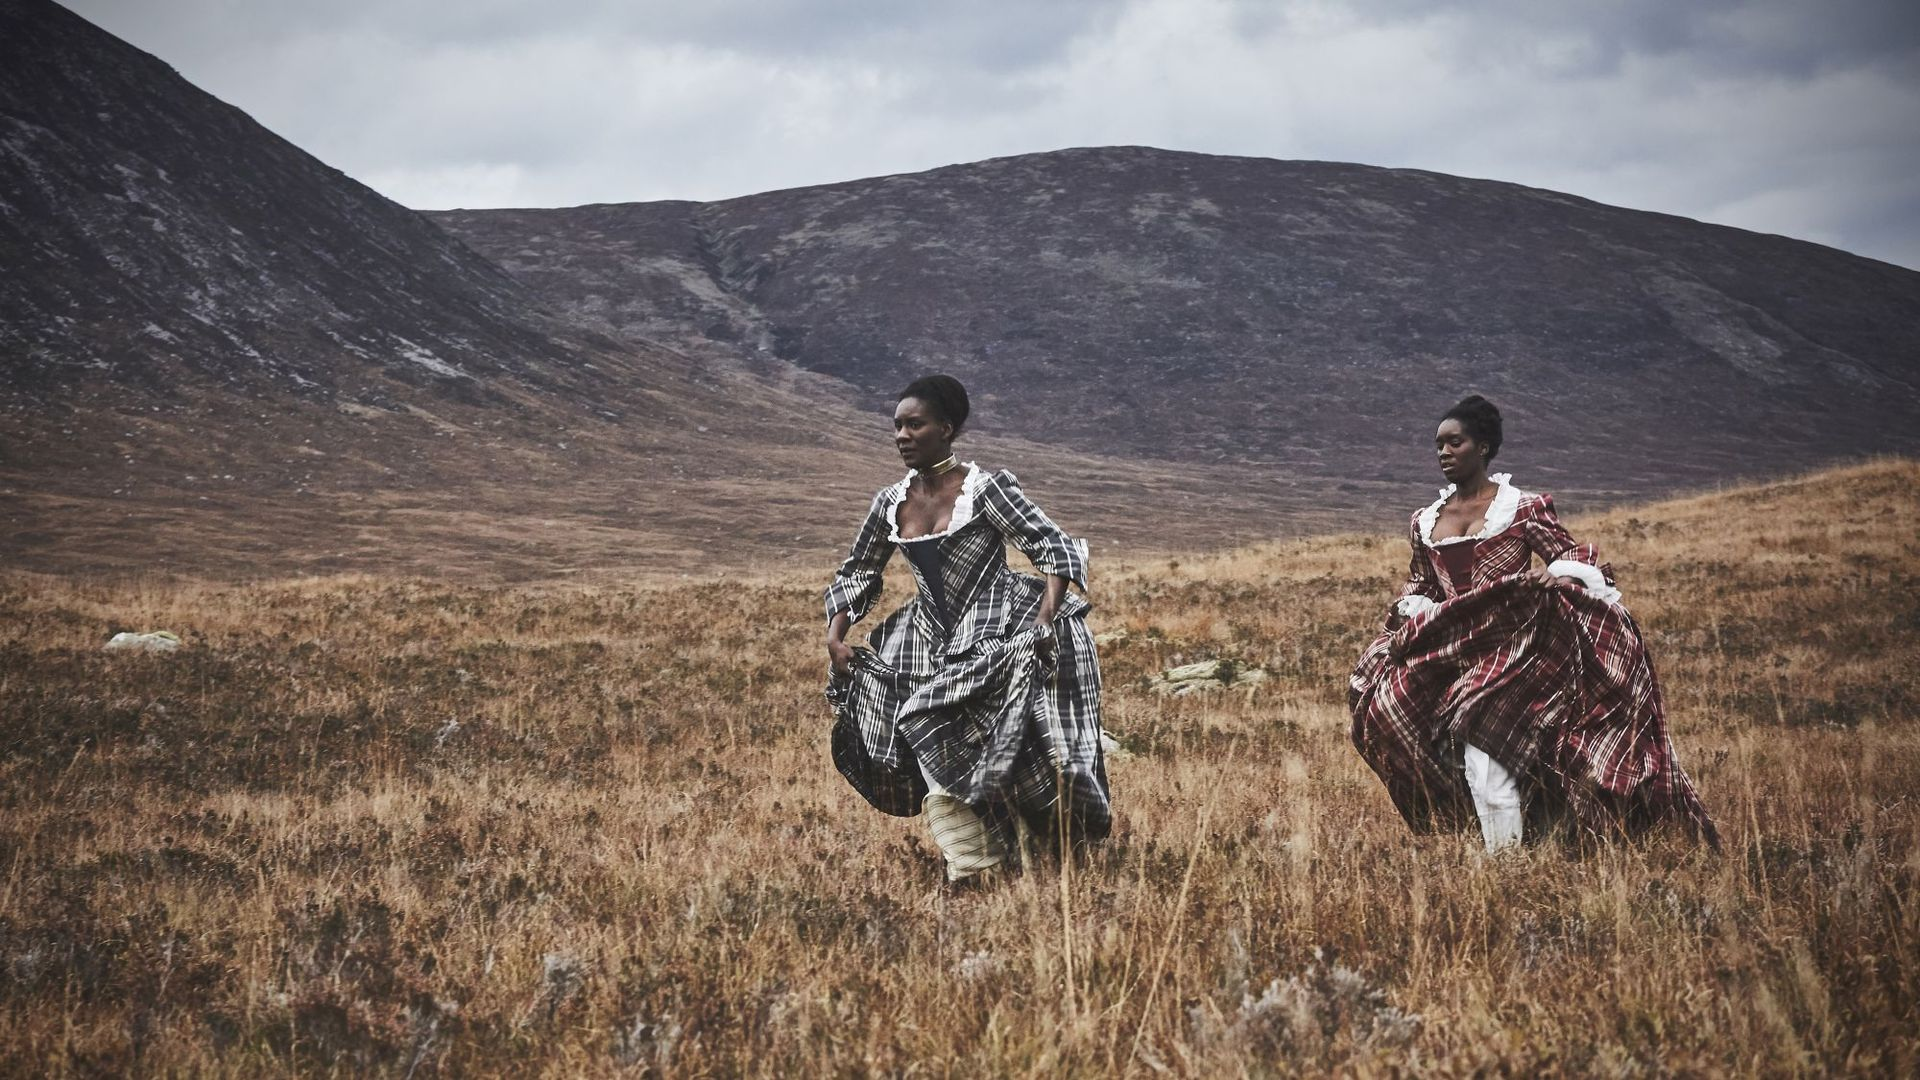 Pan-African Cinema Today (PACT)